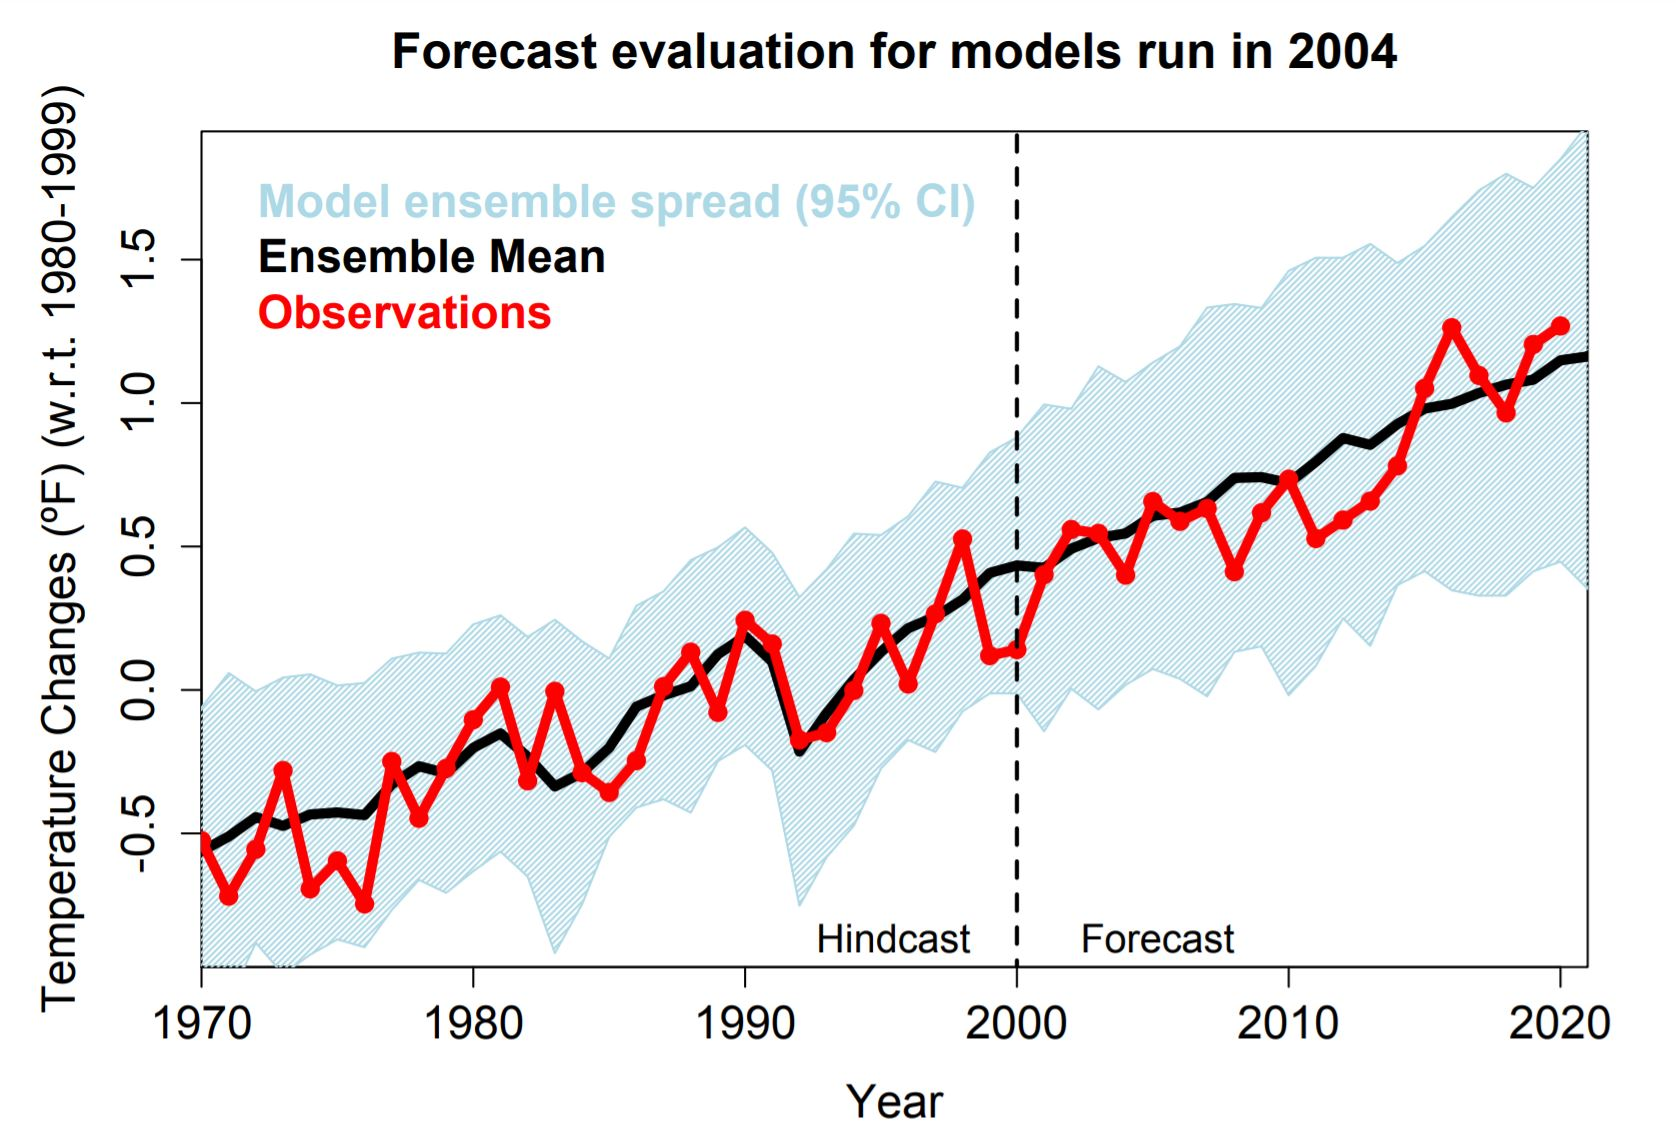 forecast evaluation for models run in 2004